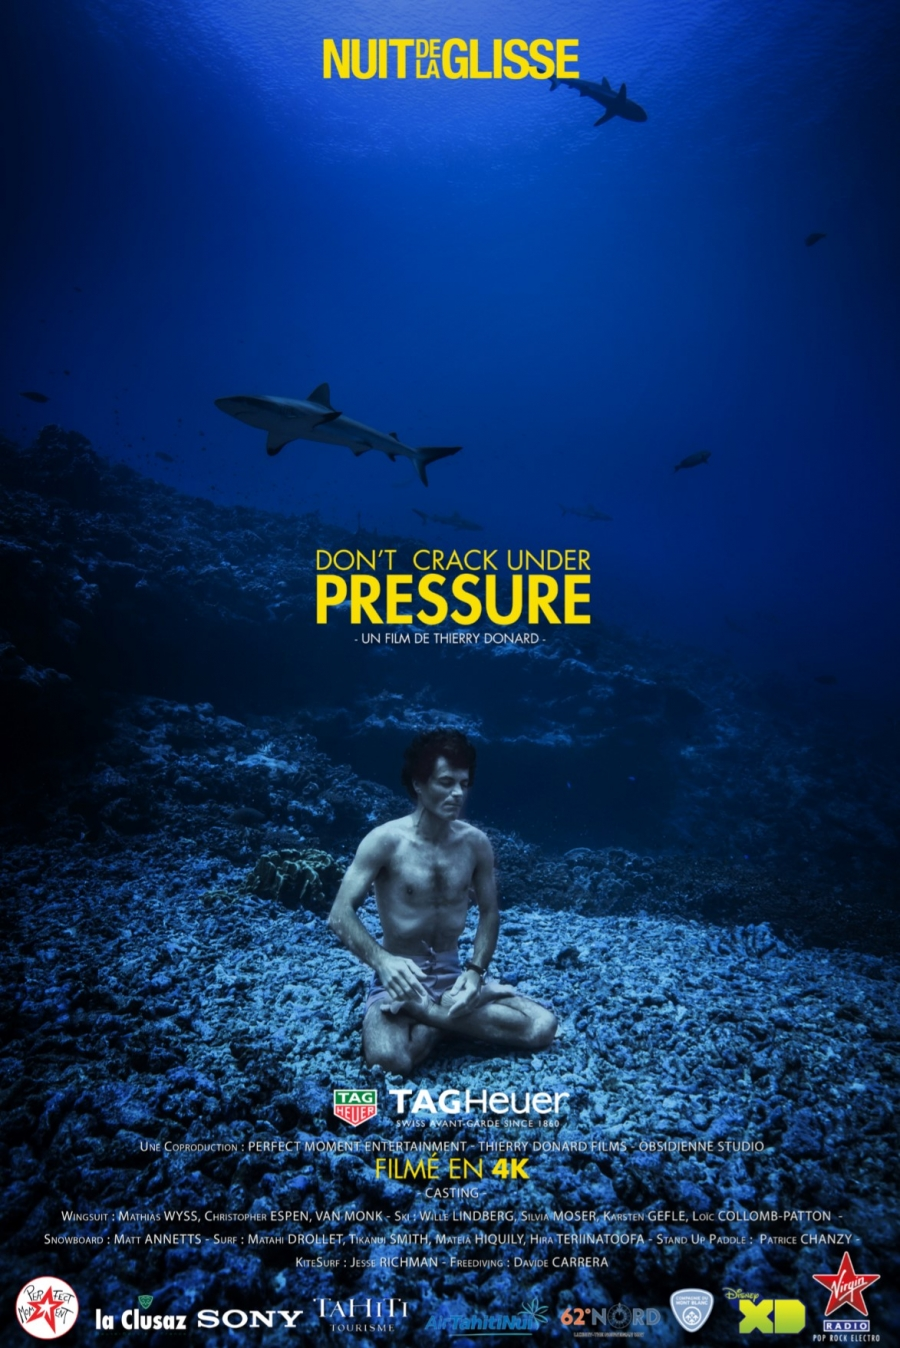 La Nuit de la Glisse 2015 – Don't Crack Under Pressure